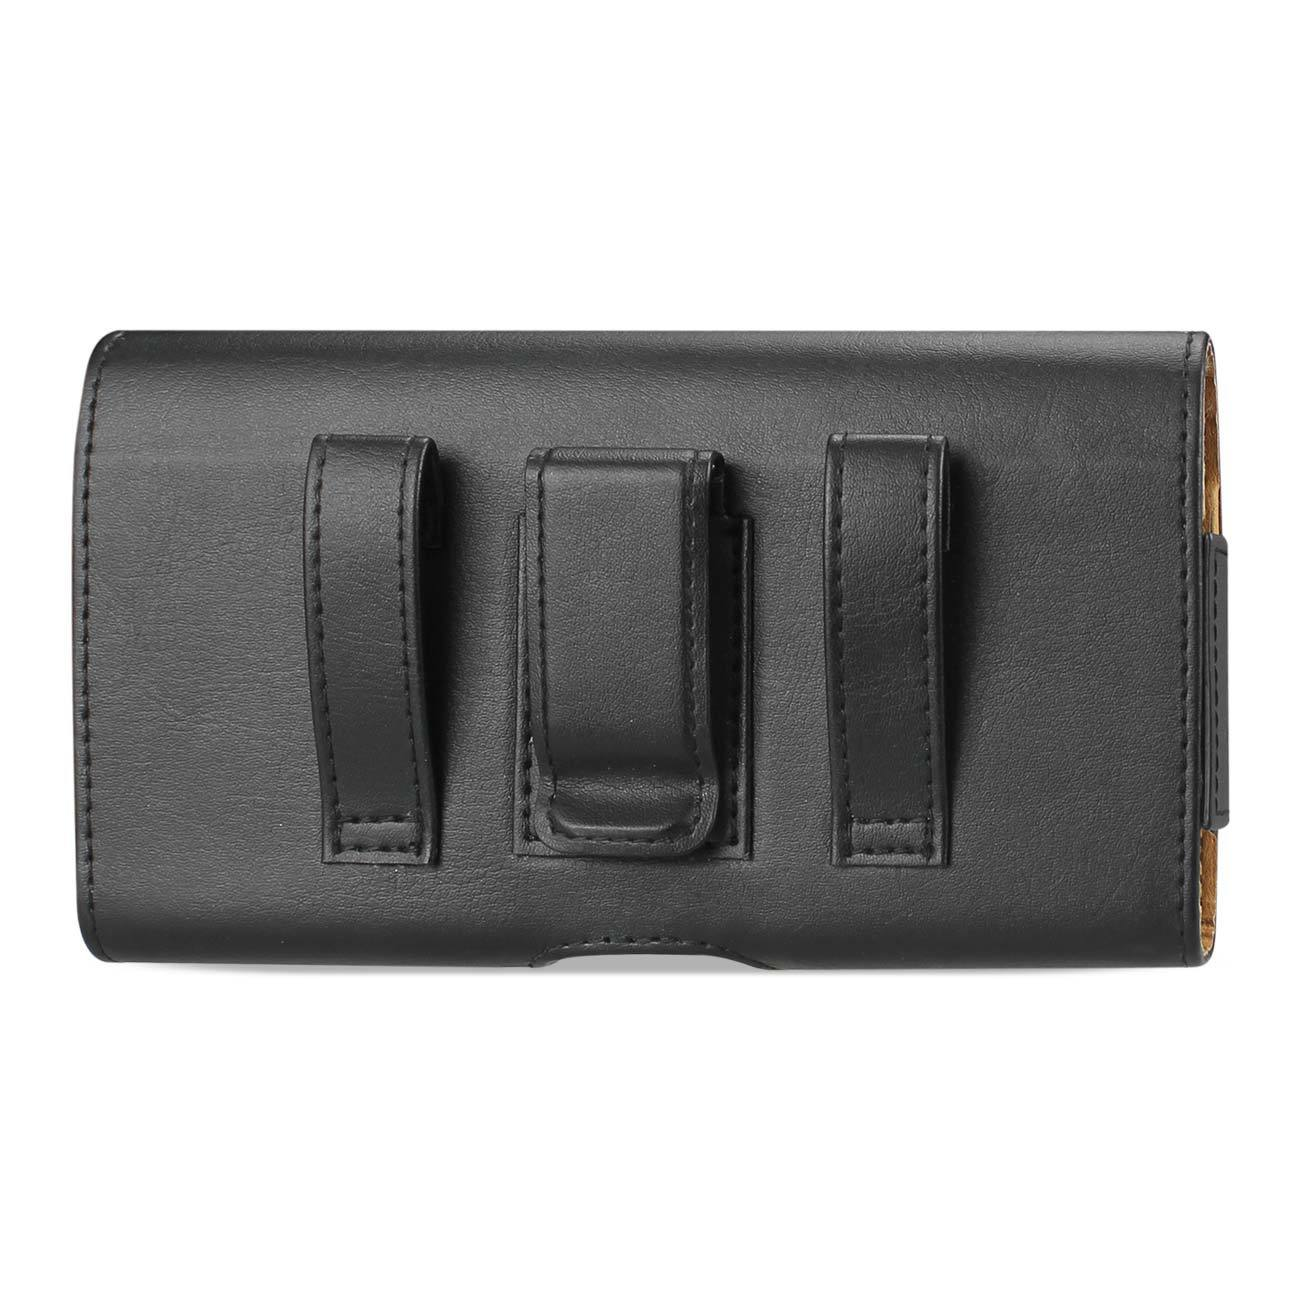 Reiko Leather Horizontal Belt Pouch With Easy Take Out Design In Black (6.0x3.1x0.7 Inches)